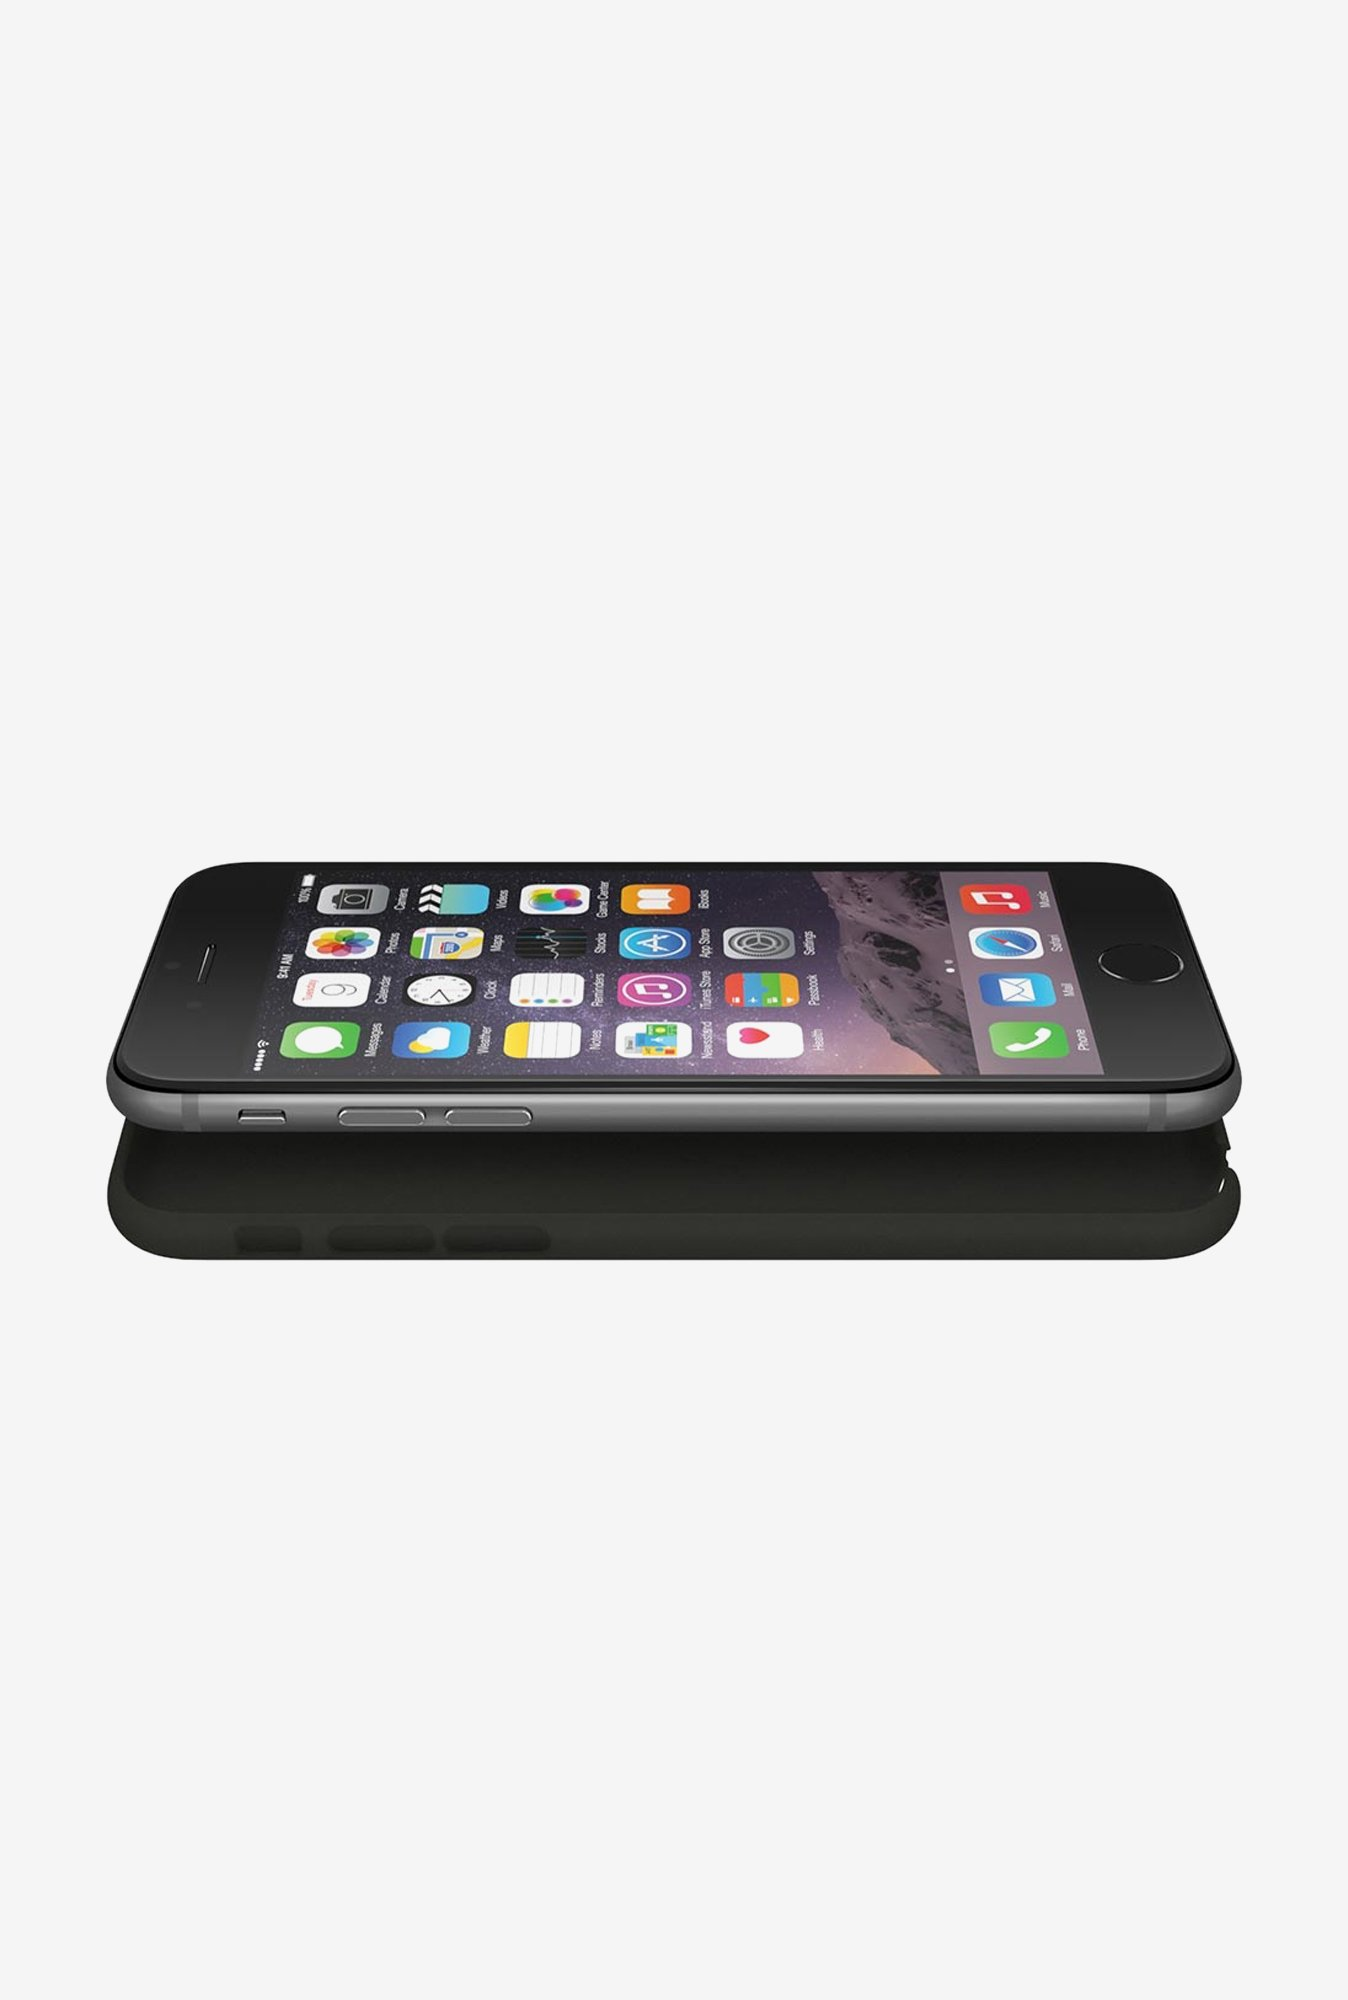 Powersupport Air Jacket UPYC-82 iPhone 6 Case Black